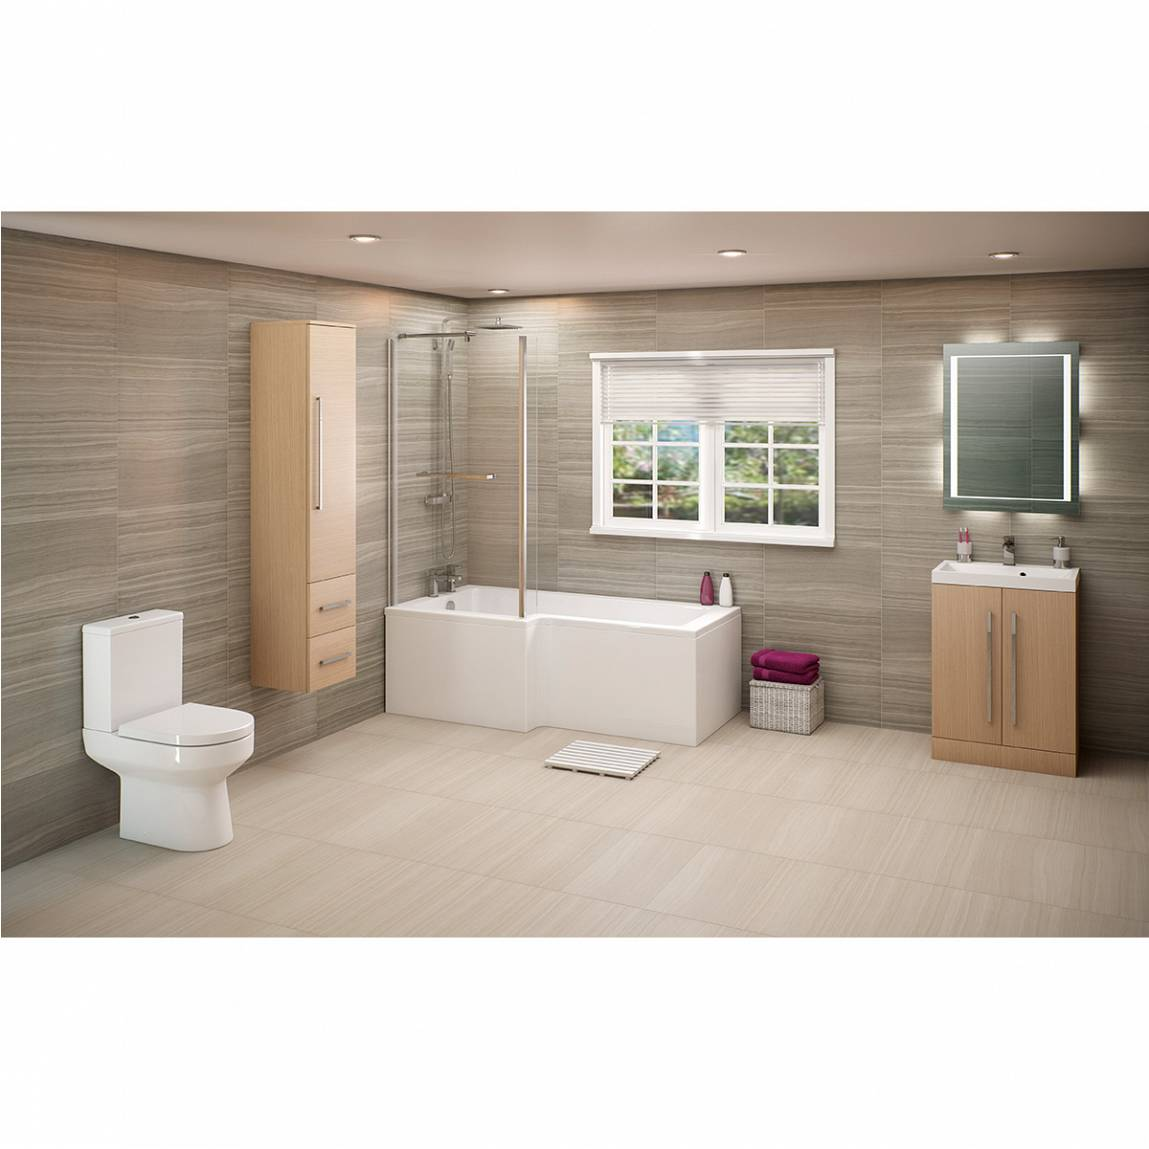 Image of Drift Shower Bath Suite LH